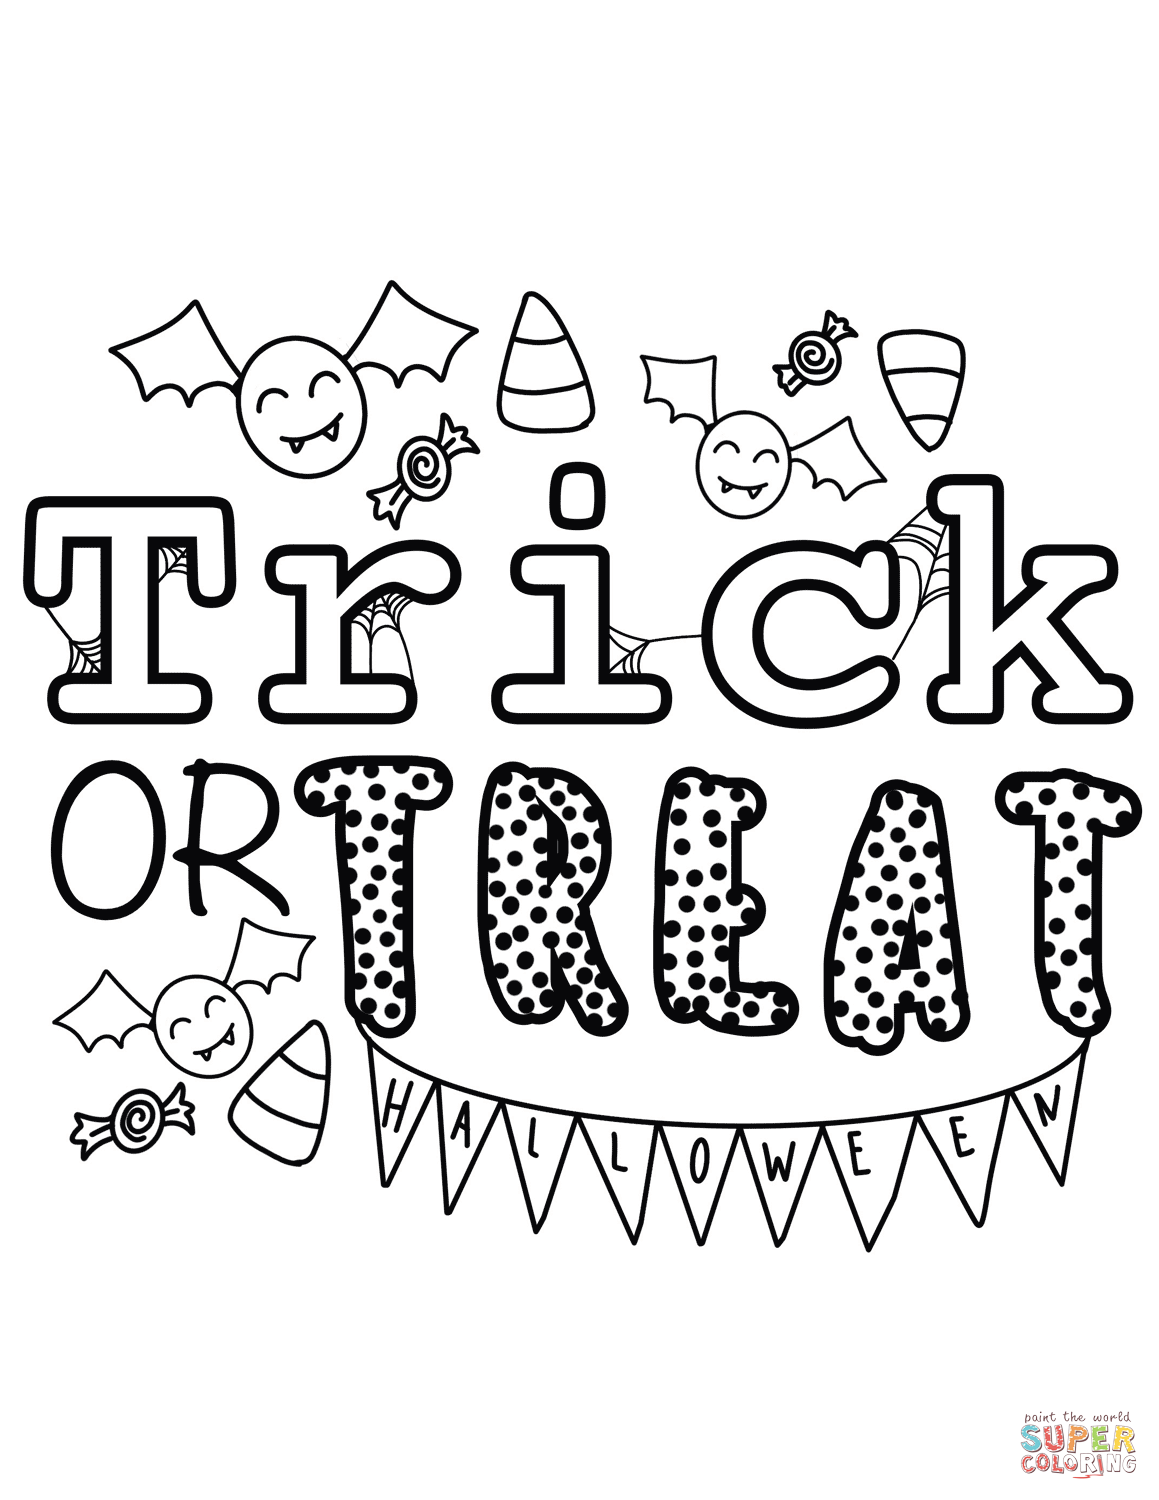 Trick Or Treat Bags Coloring Pages - Coloring Home